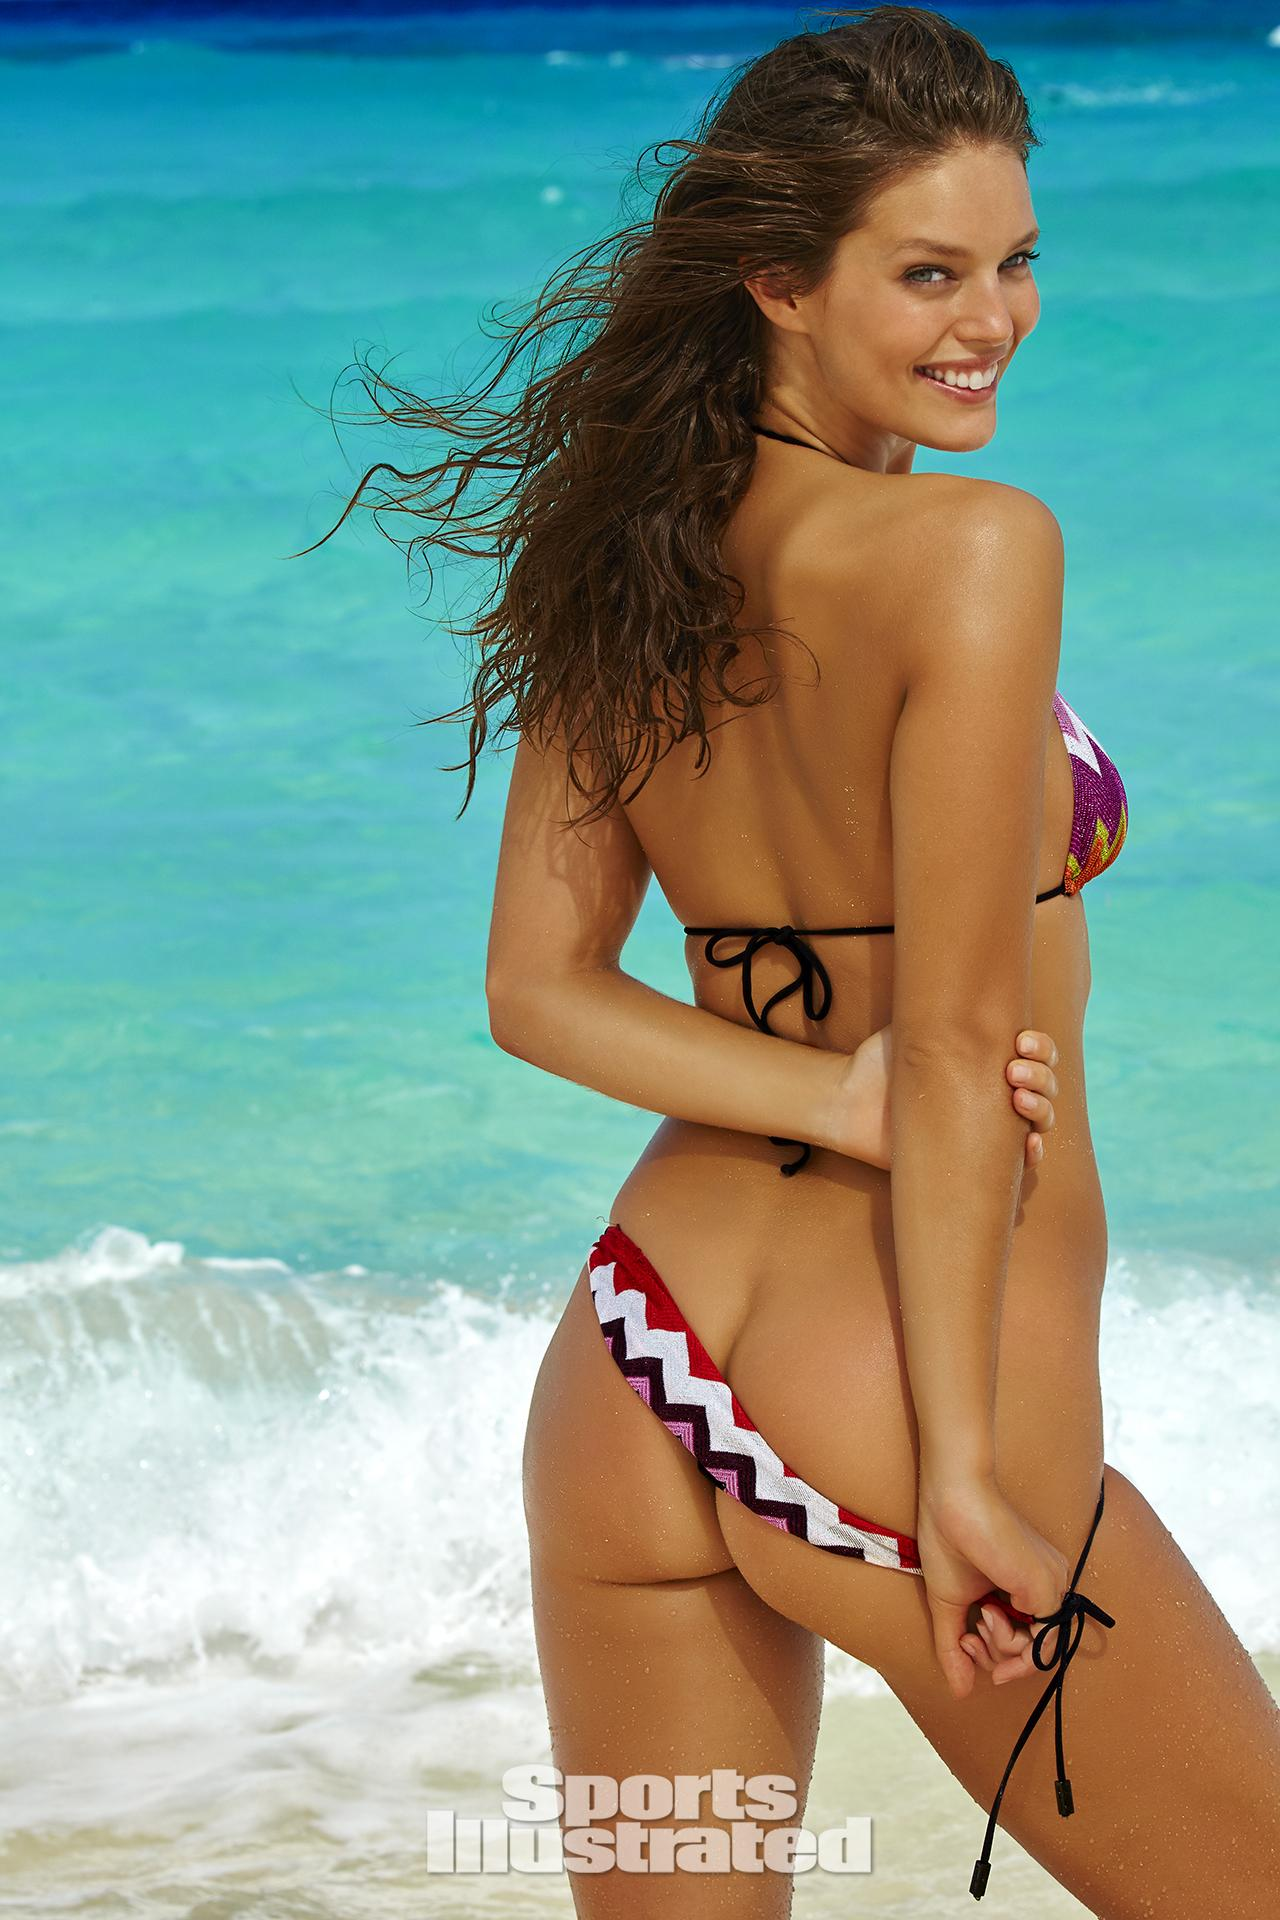 Emily didonato sports illustrated swimsuit